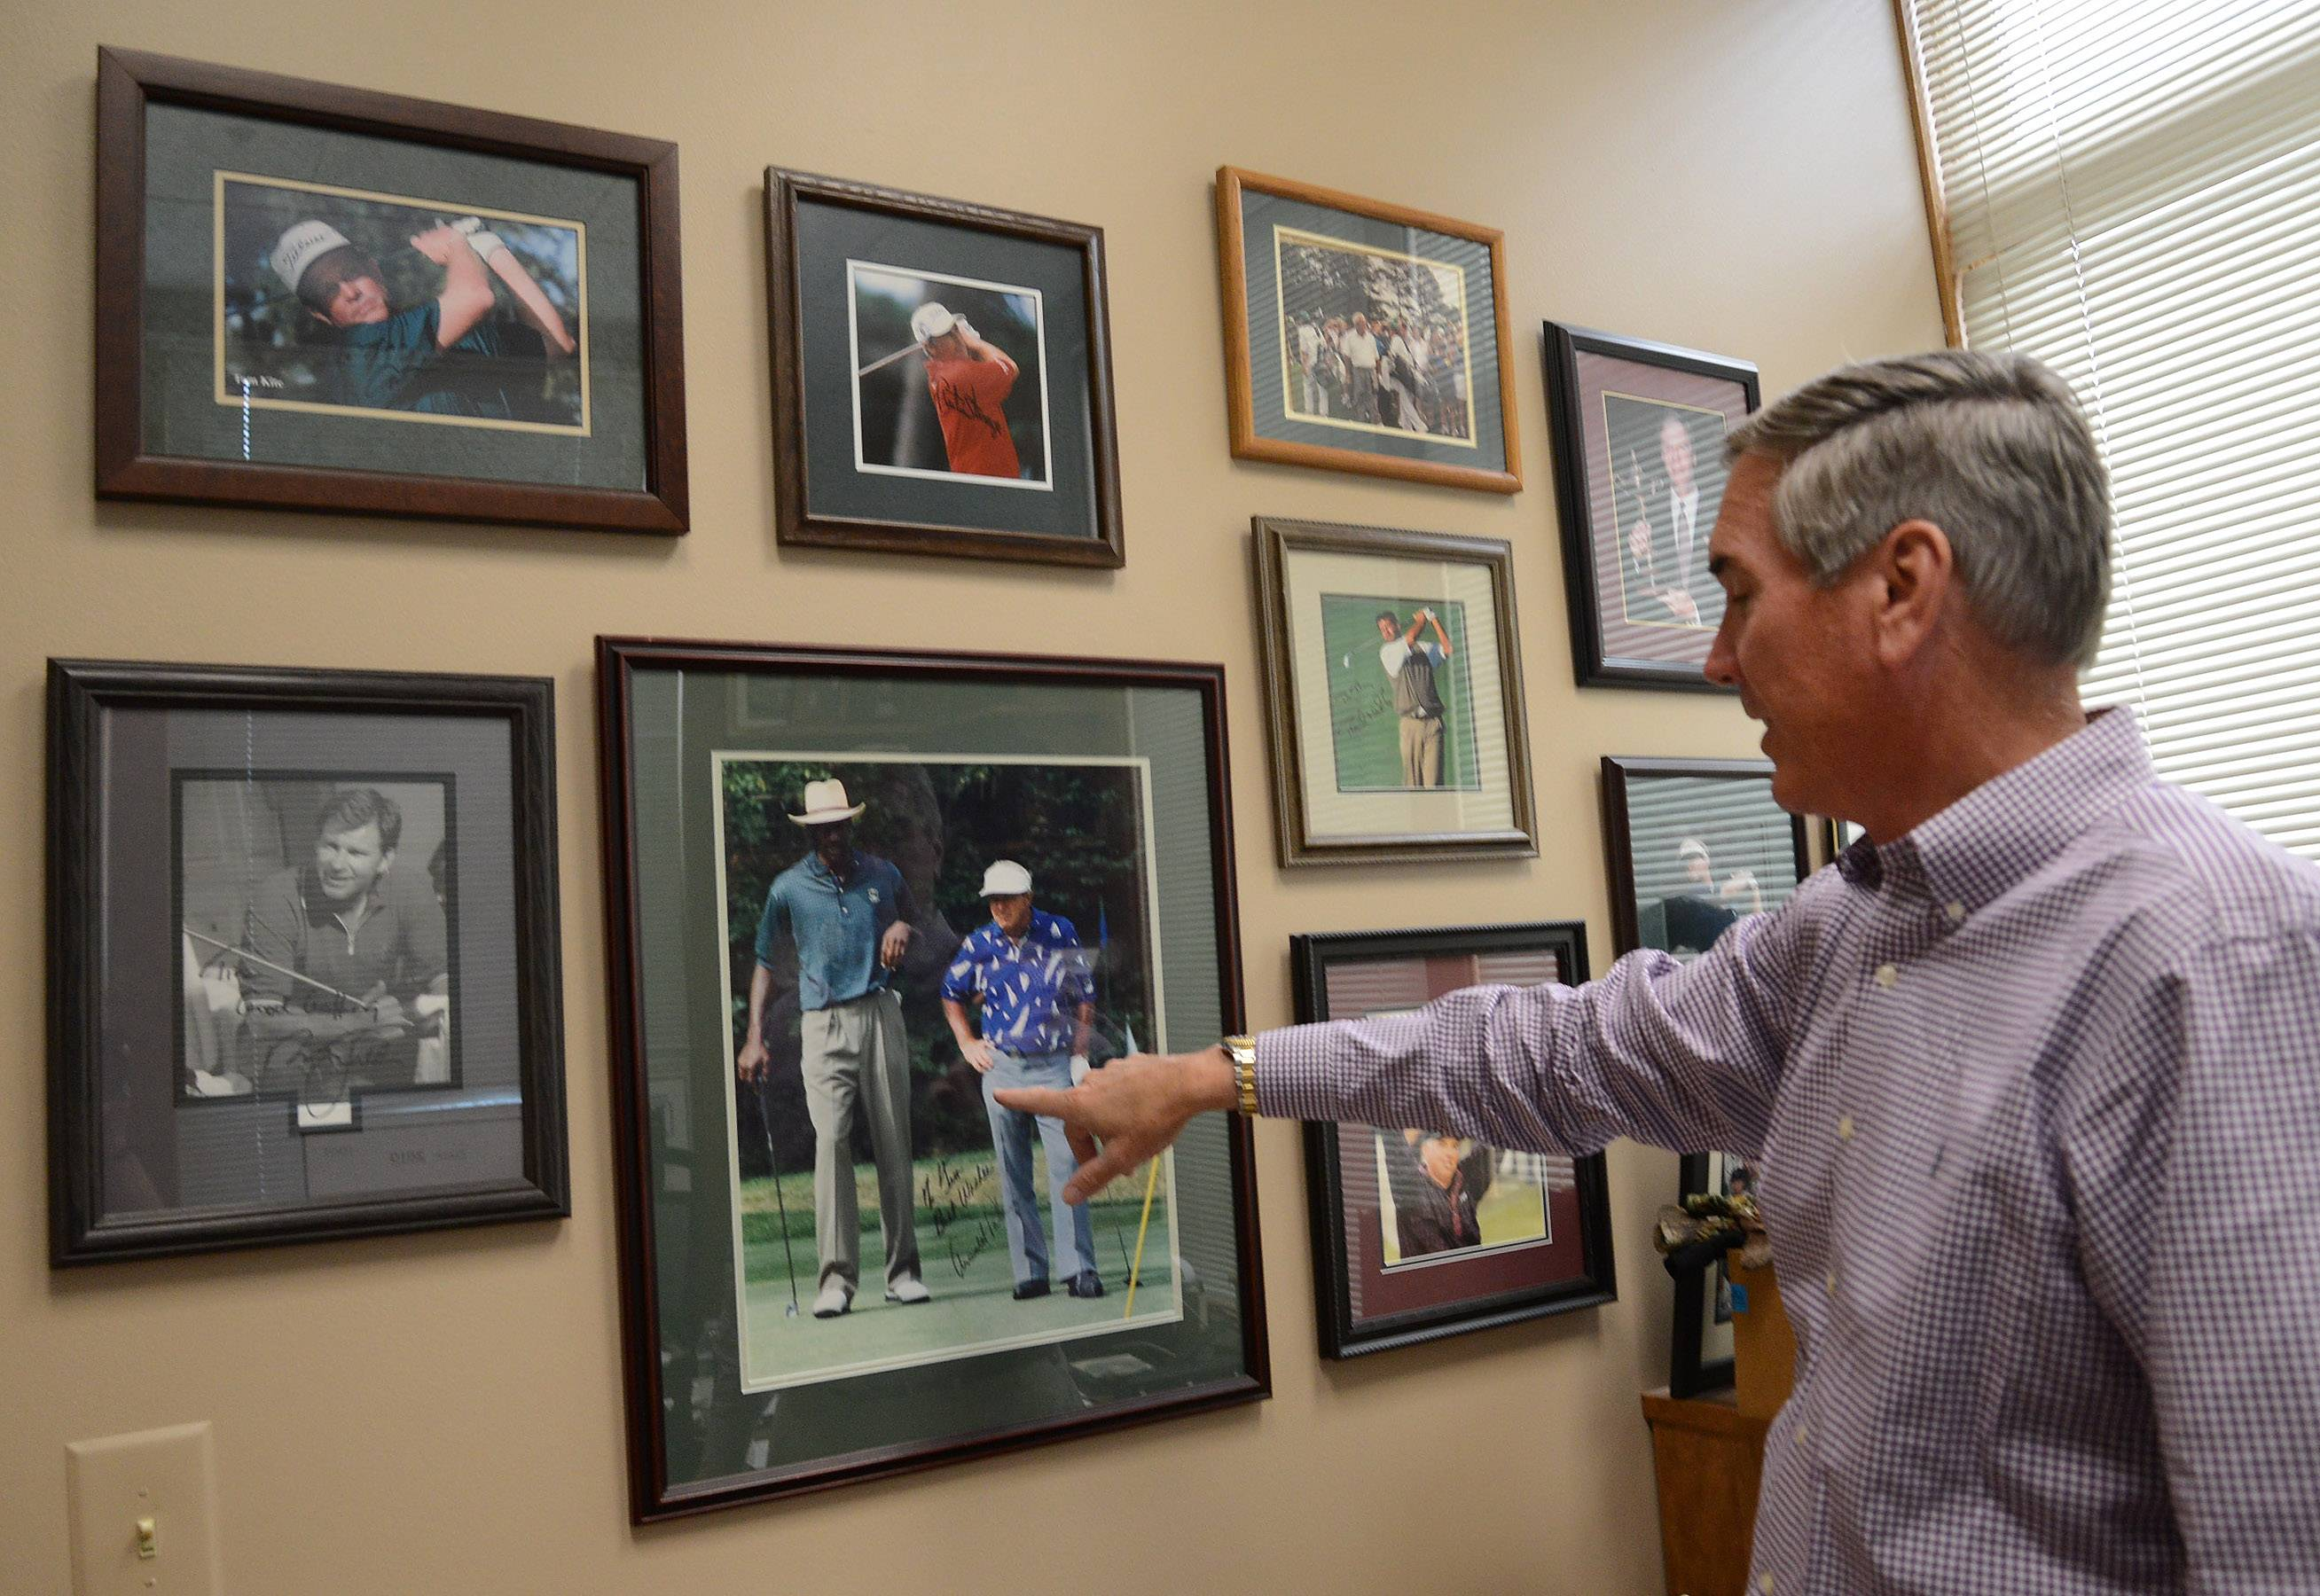 New Illinois Republican Party chairman and Cook County Commissioner Tim Schneider looks over his autographed pictures of famous golfers at the Golf Club of Illinois in Algonquin, which he owns.